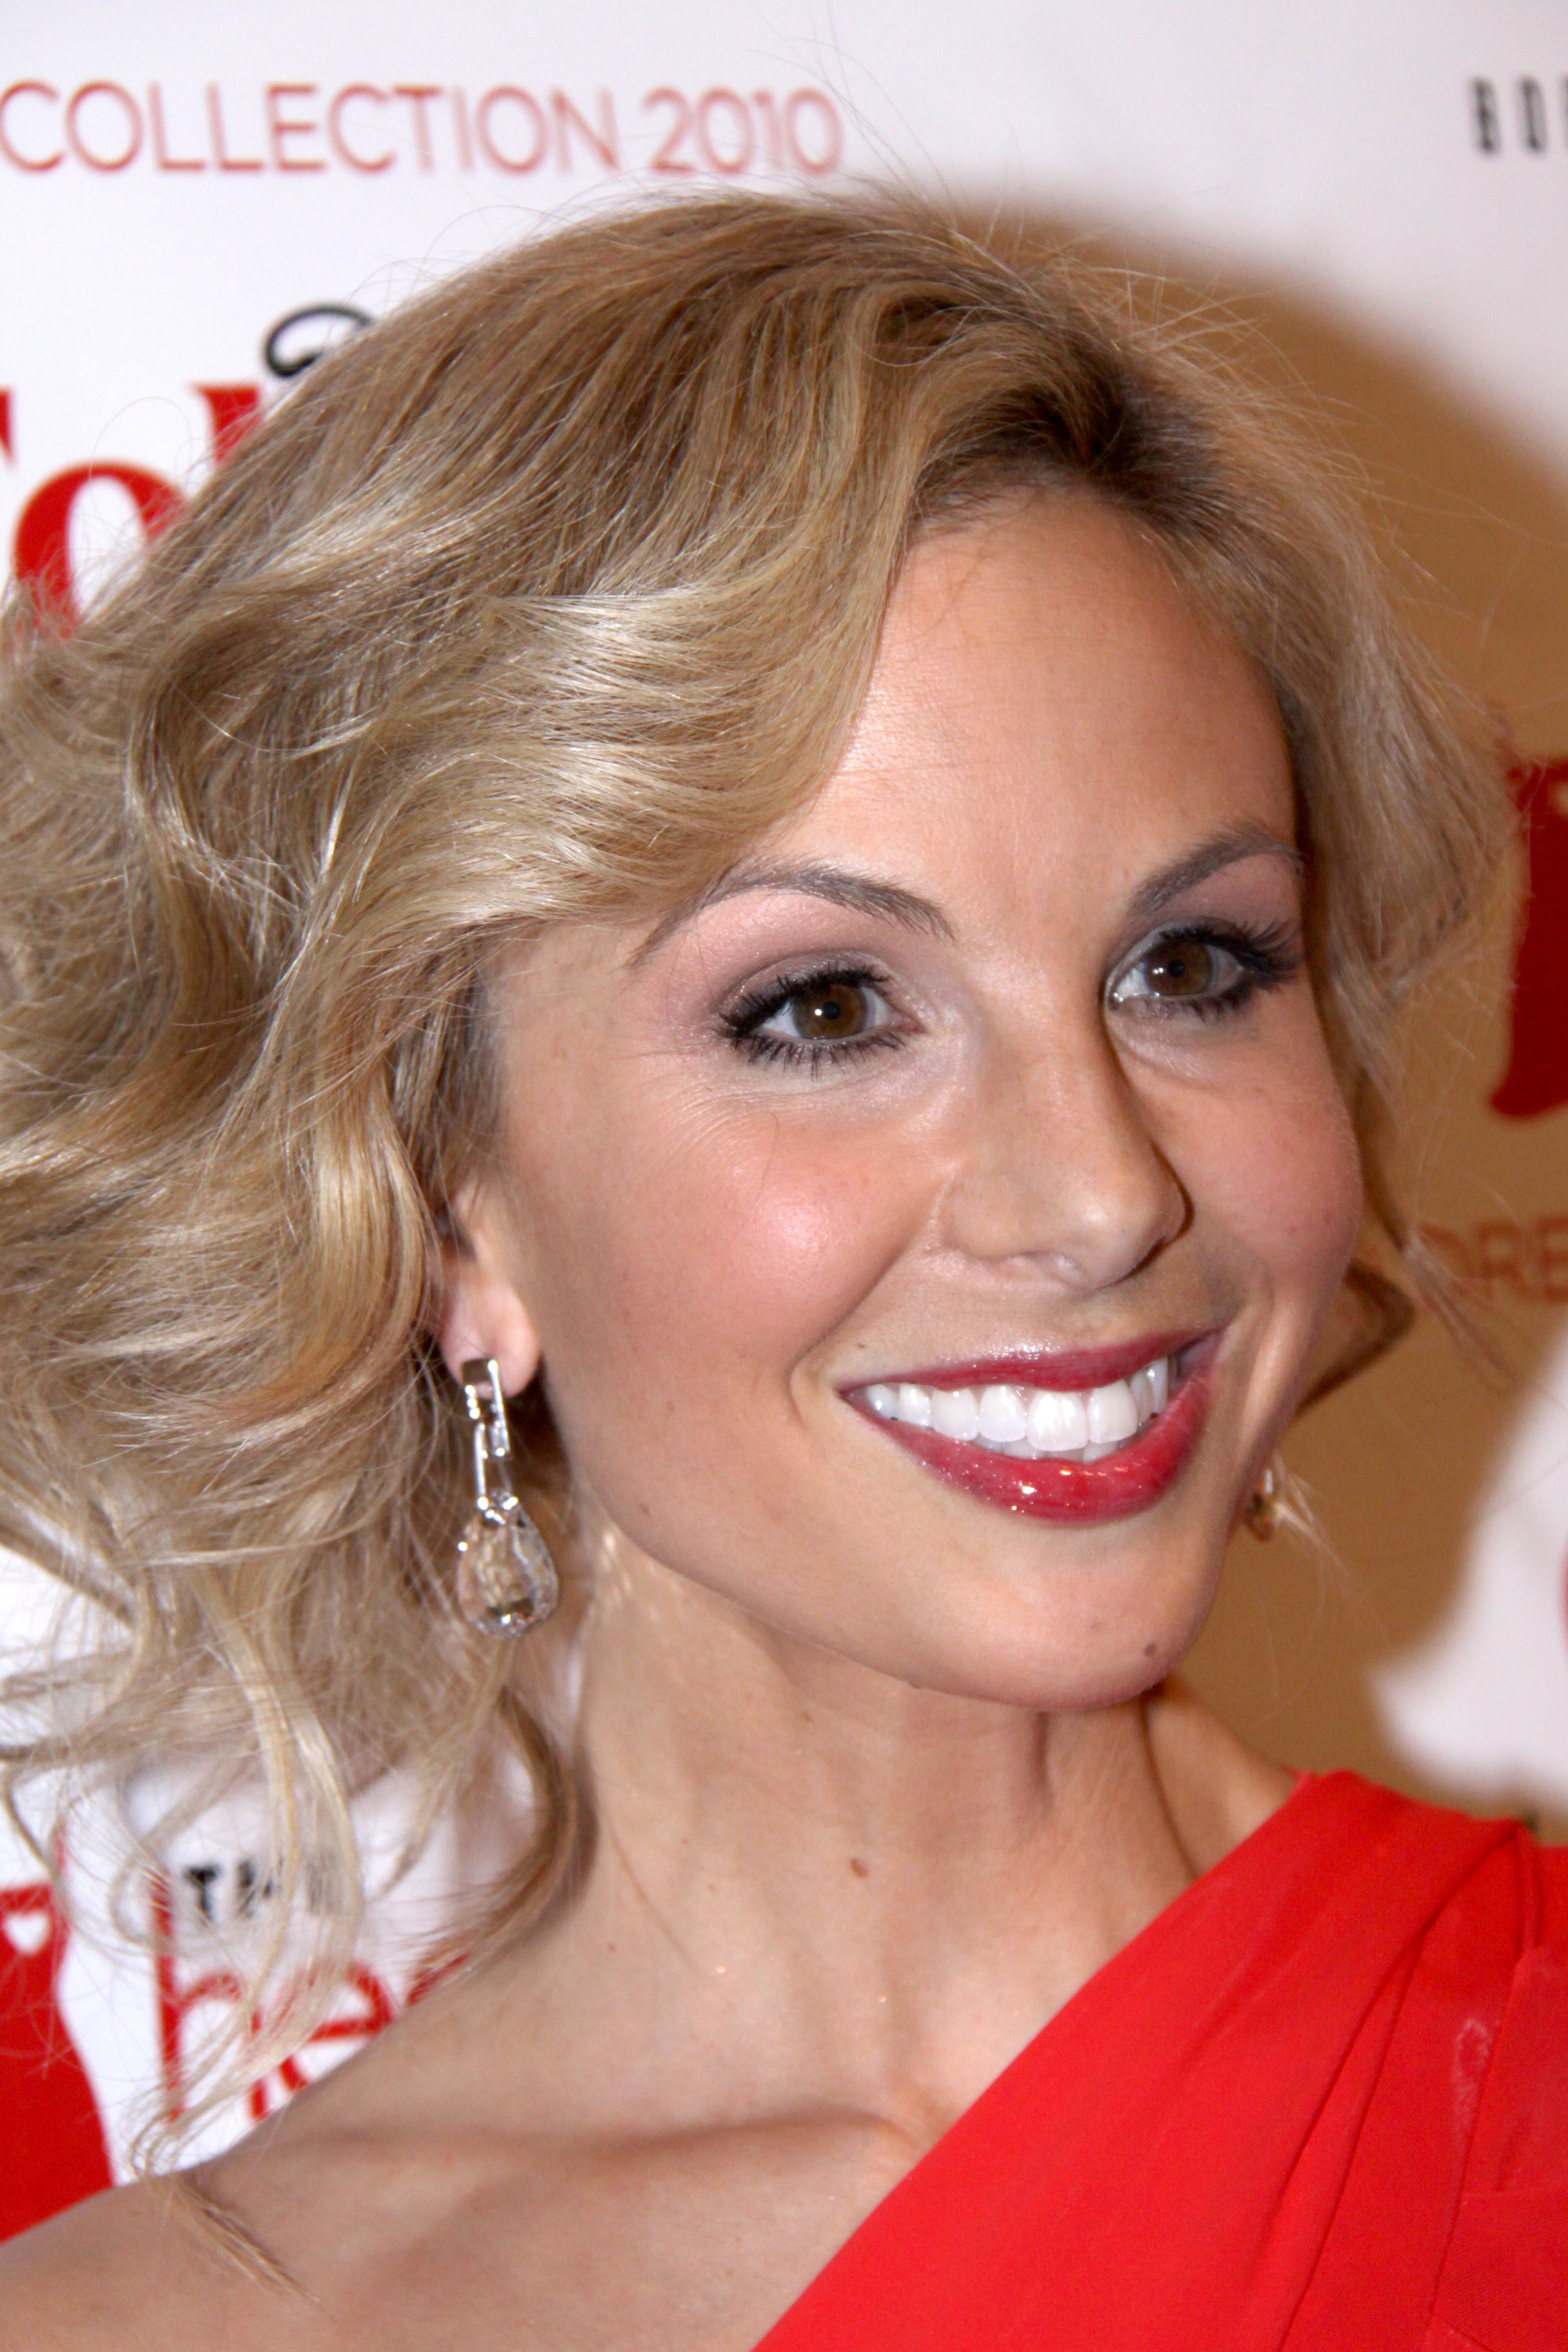 Only high quality pics and photos of Elisabeth Hasselbeck